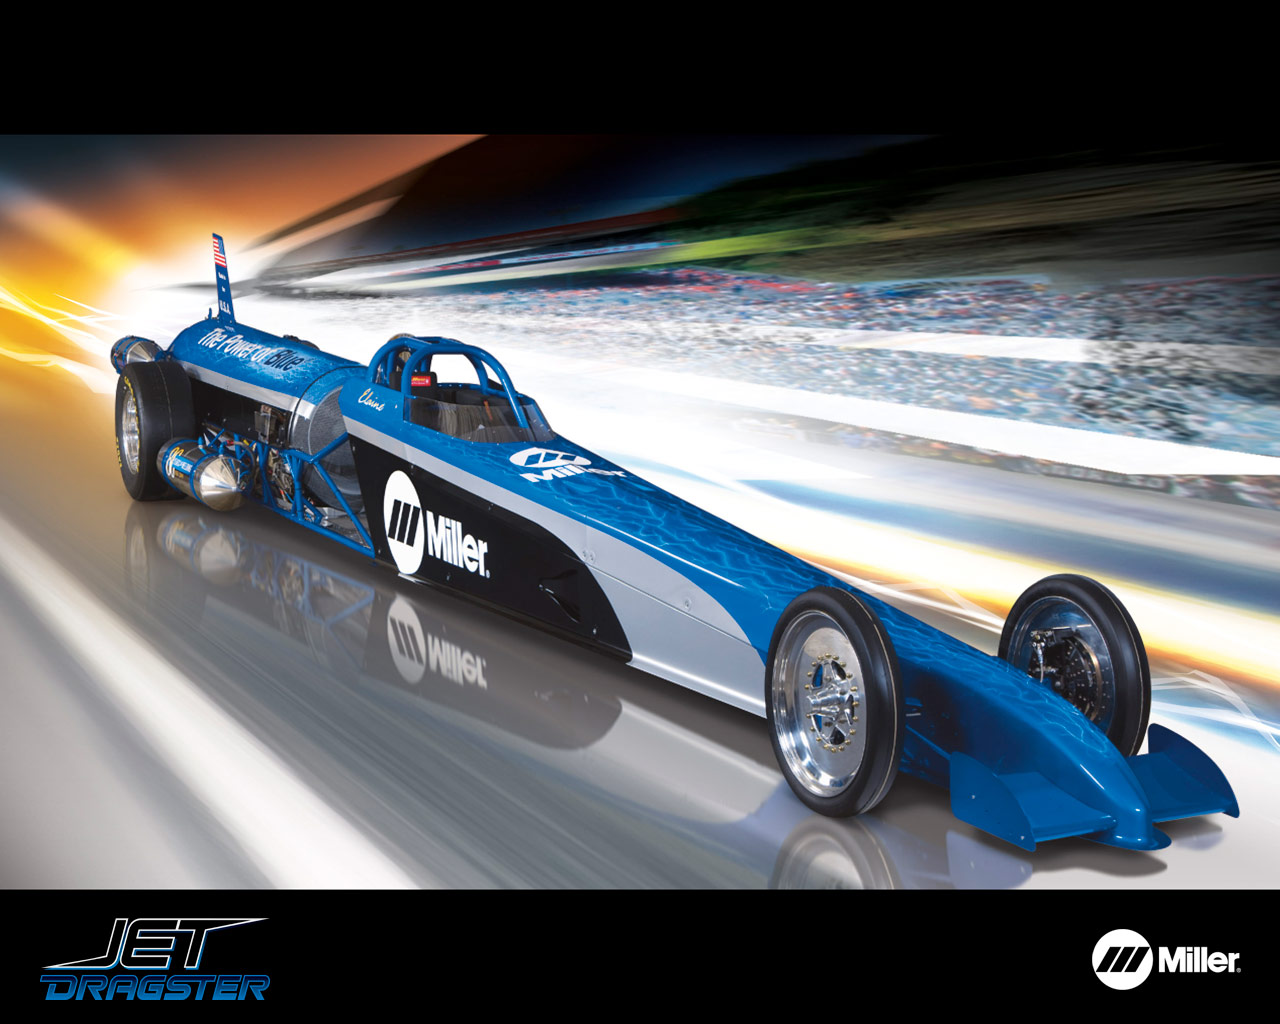 Dragster jet dragster photos reviews news specs buy car for Jet cars review